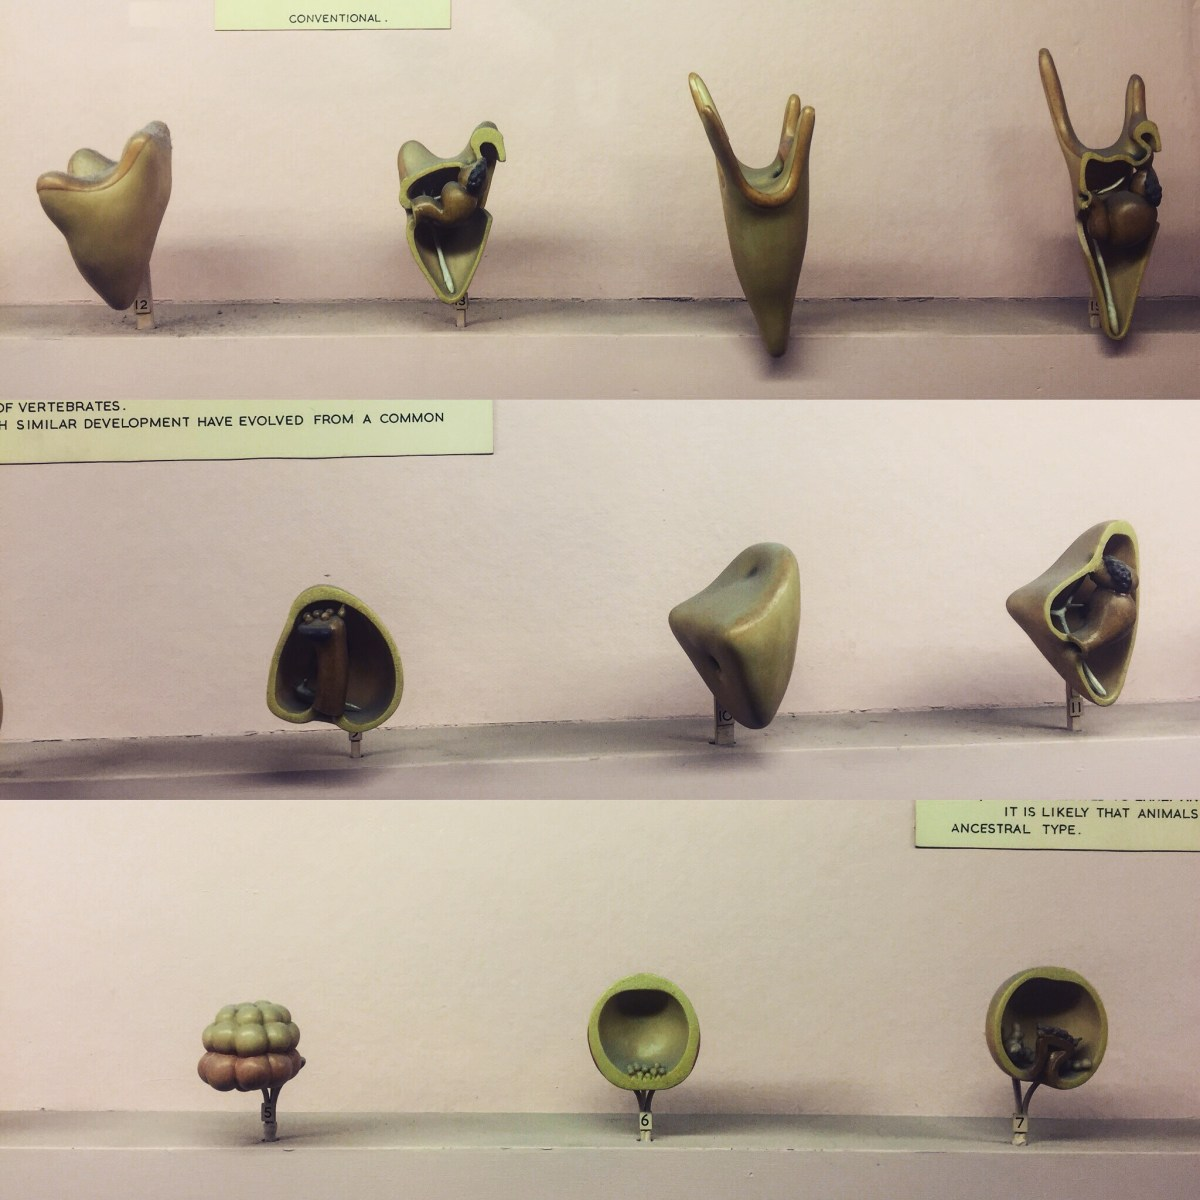 Embryology, Horniman Museum, London